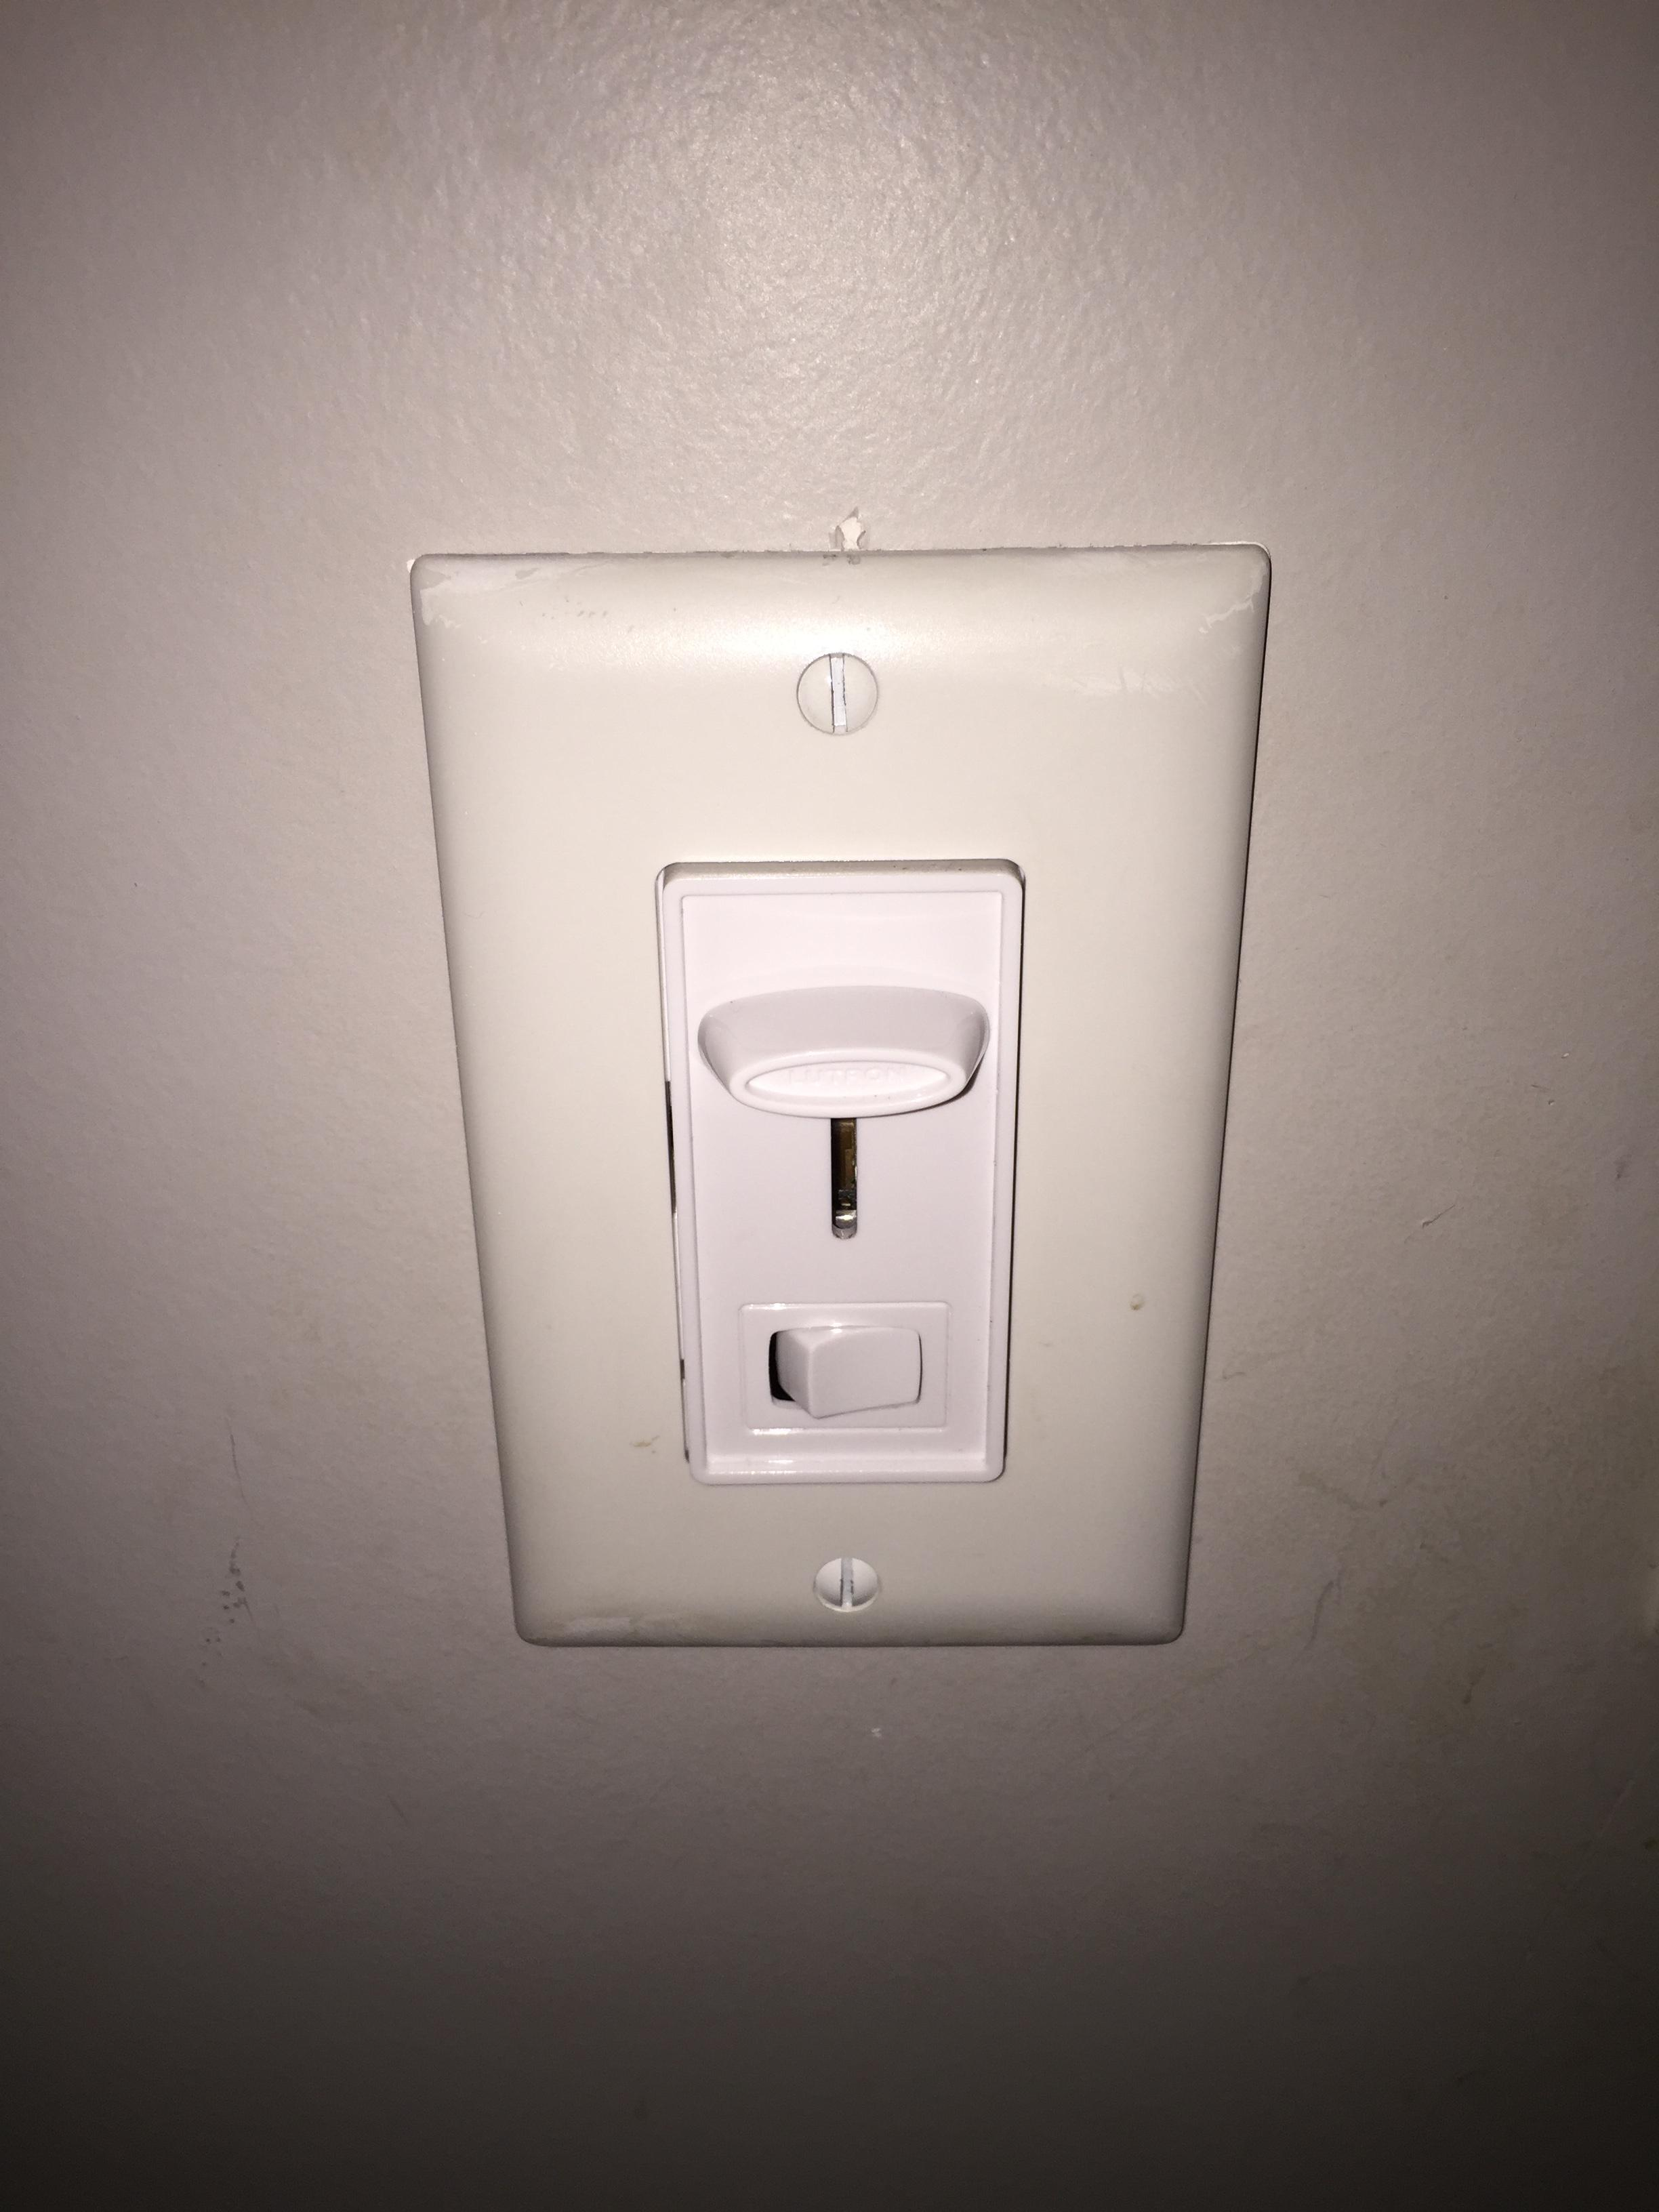 Wiring Diagram For Ceiling Fan With Dimmer Switch